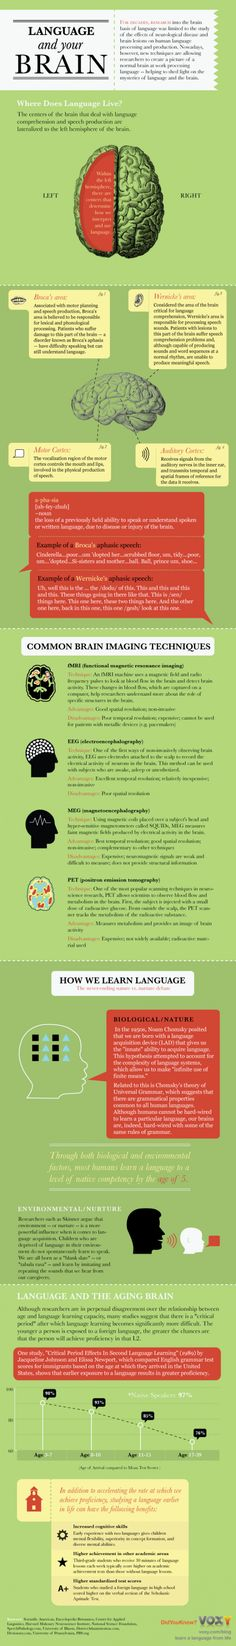 Language and the brain.  Repinned by SOS Inc. Resources.  Follow all our boards at http://pinterest.com/sostherapy  for therapy resources.